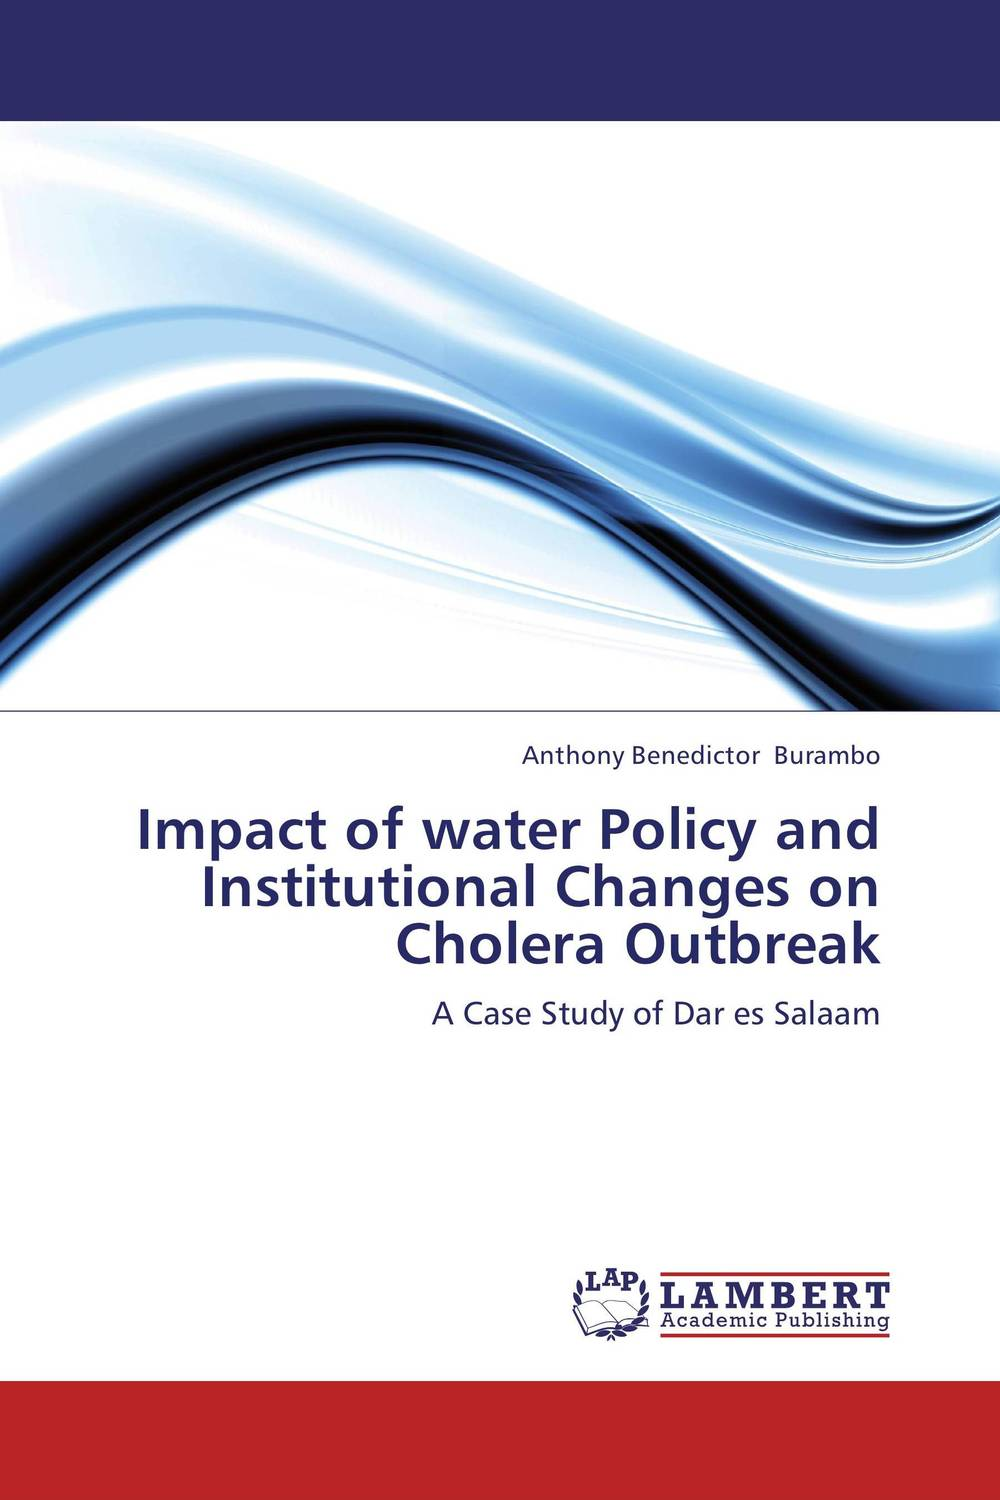 Impact of water Policy and Institutional Changes on Cholera Outbreak jedel ervin tabamo environmental planning and management in dar es salaam tanzania